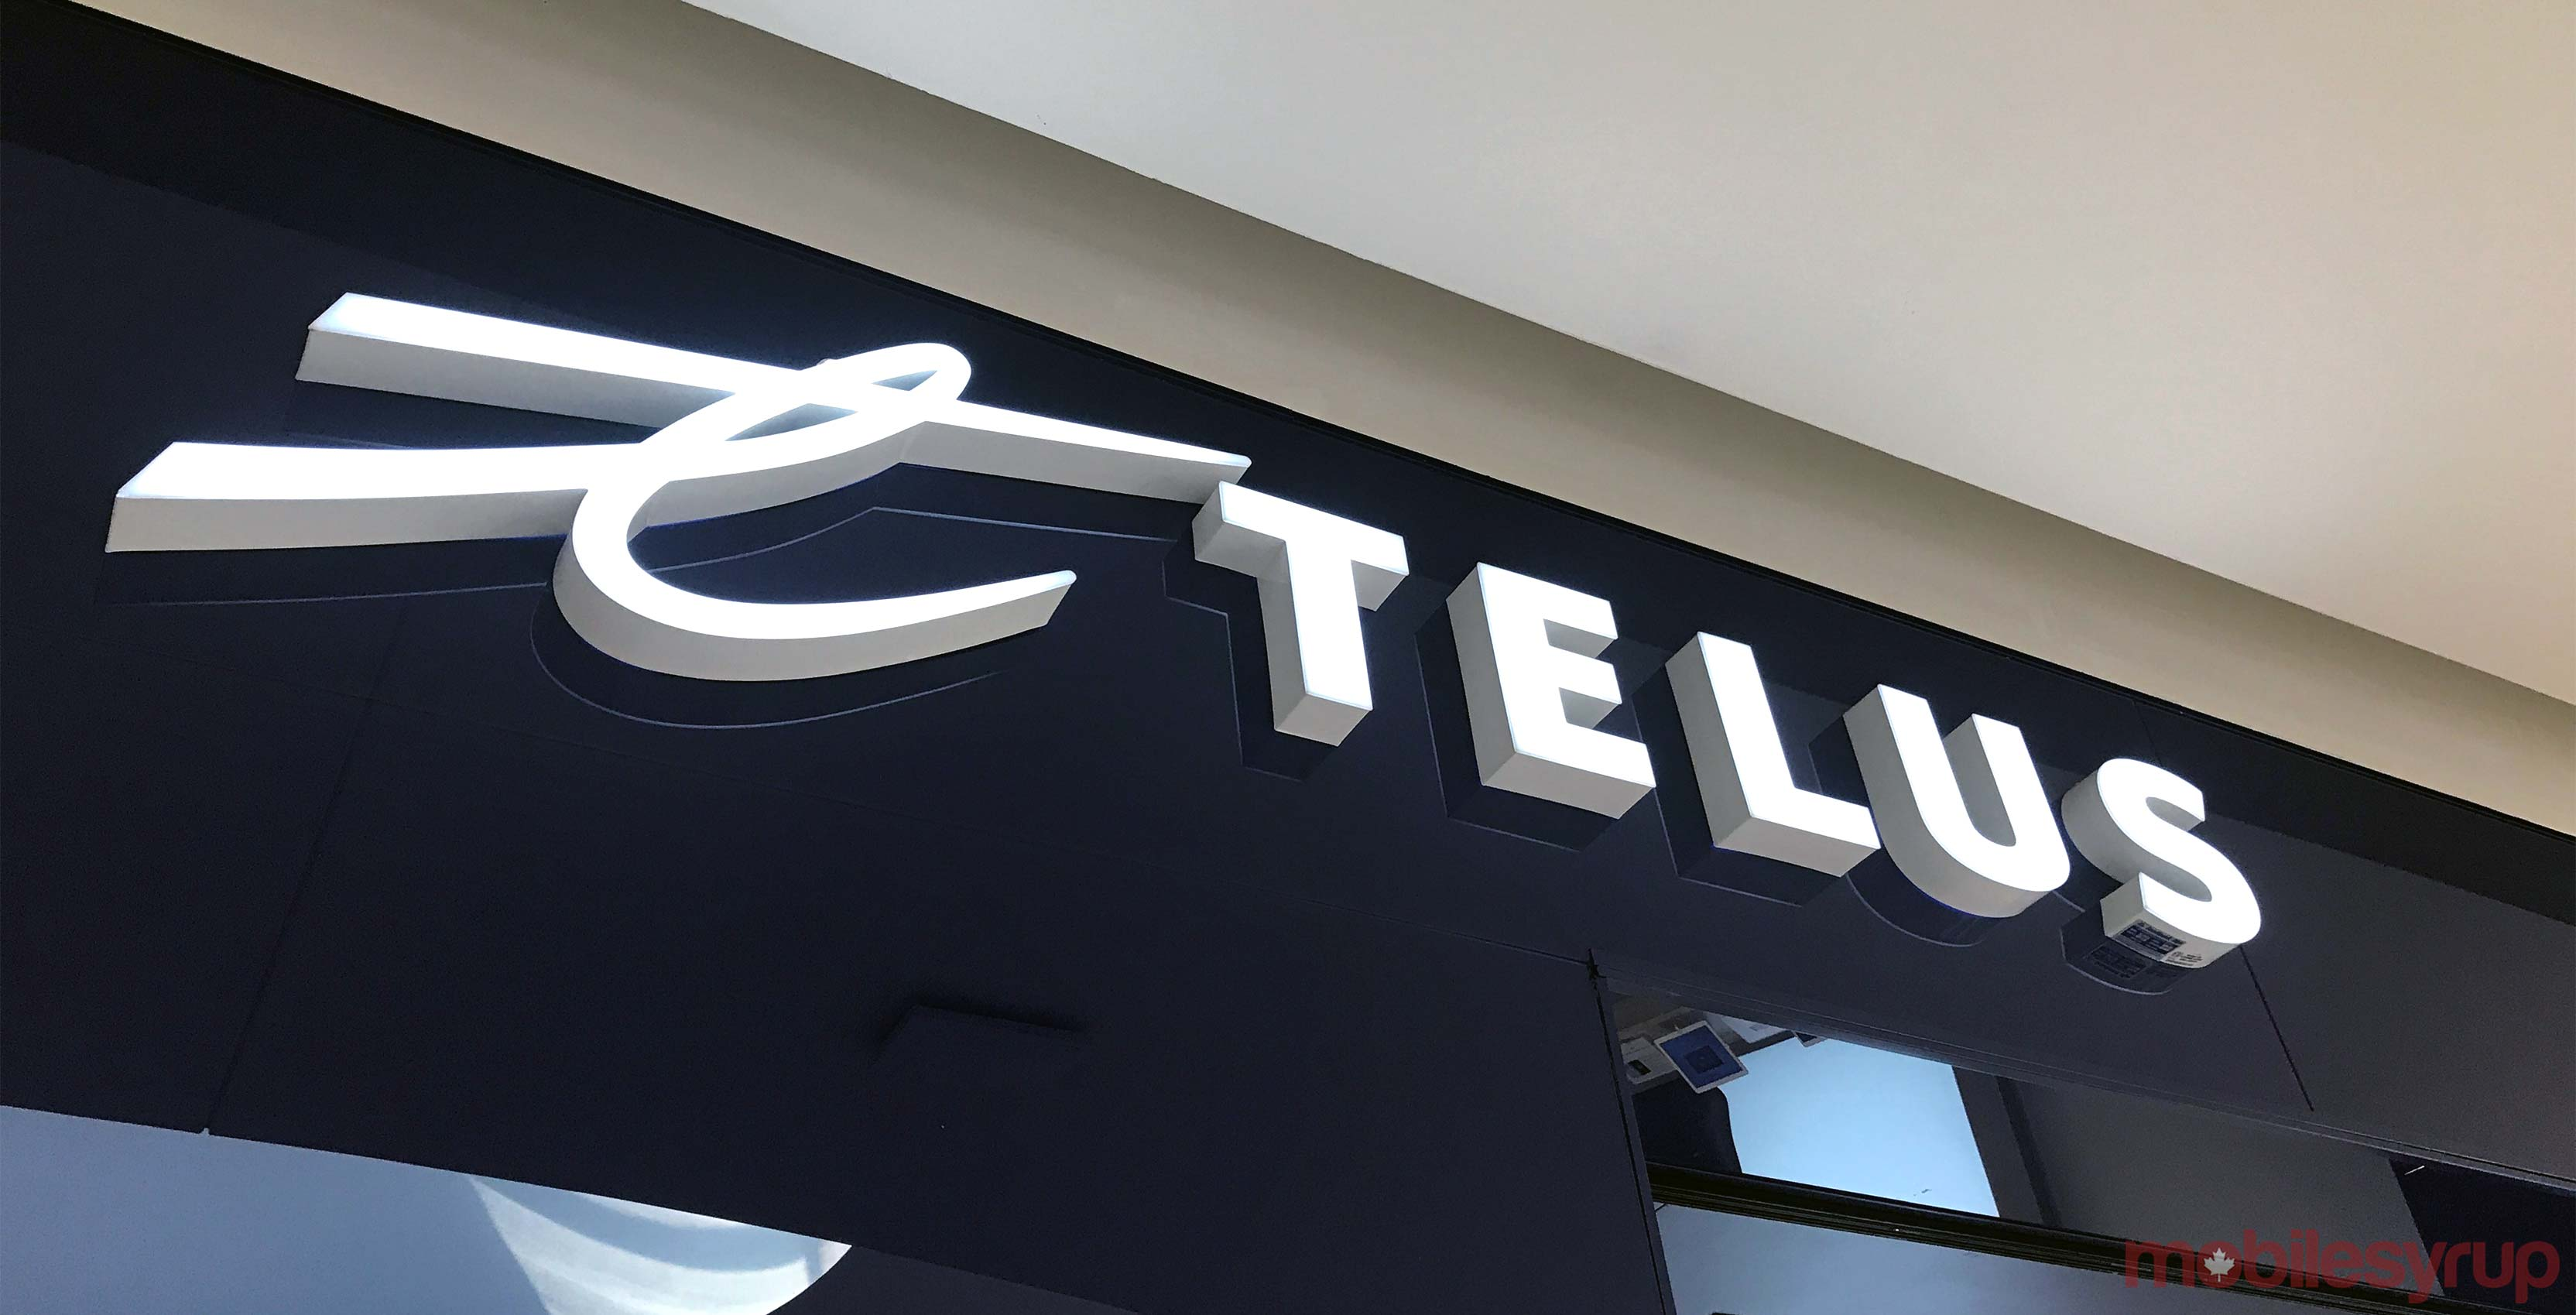 Telus logo with blue background